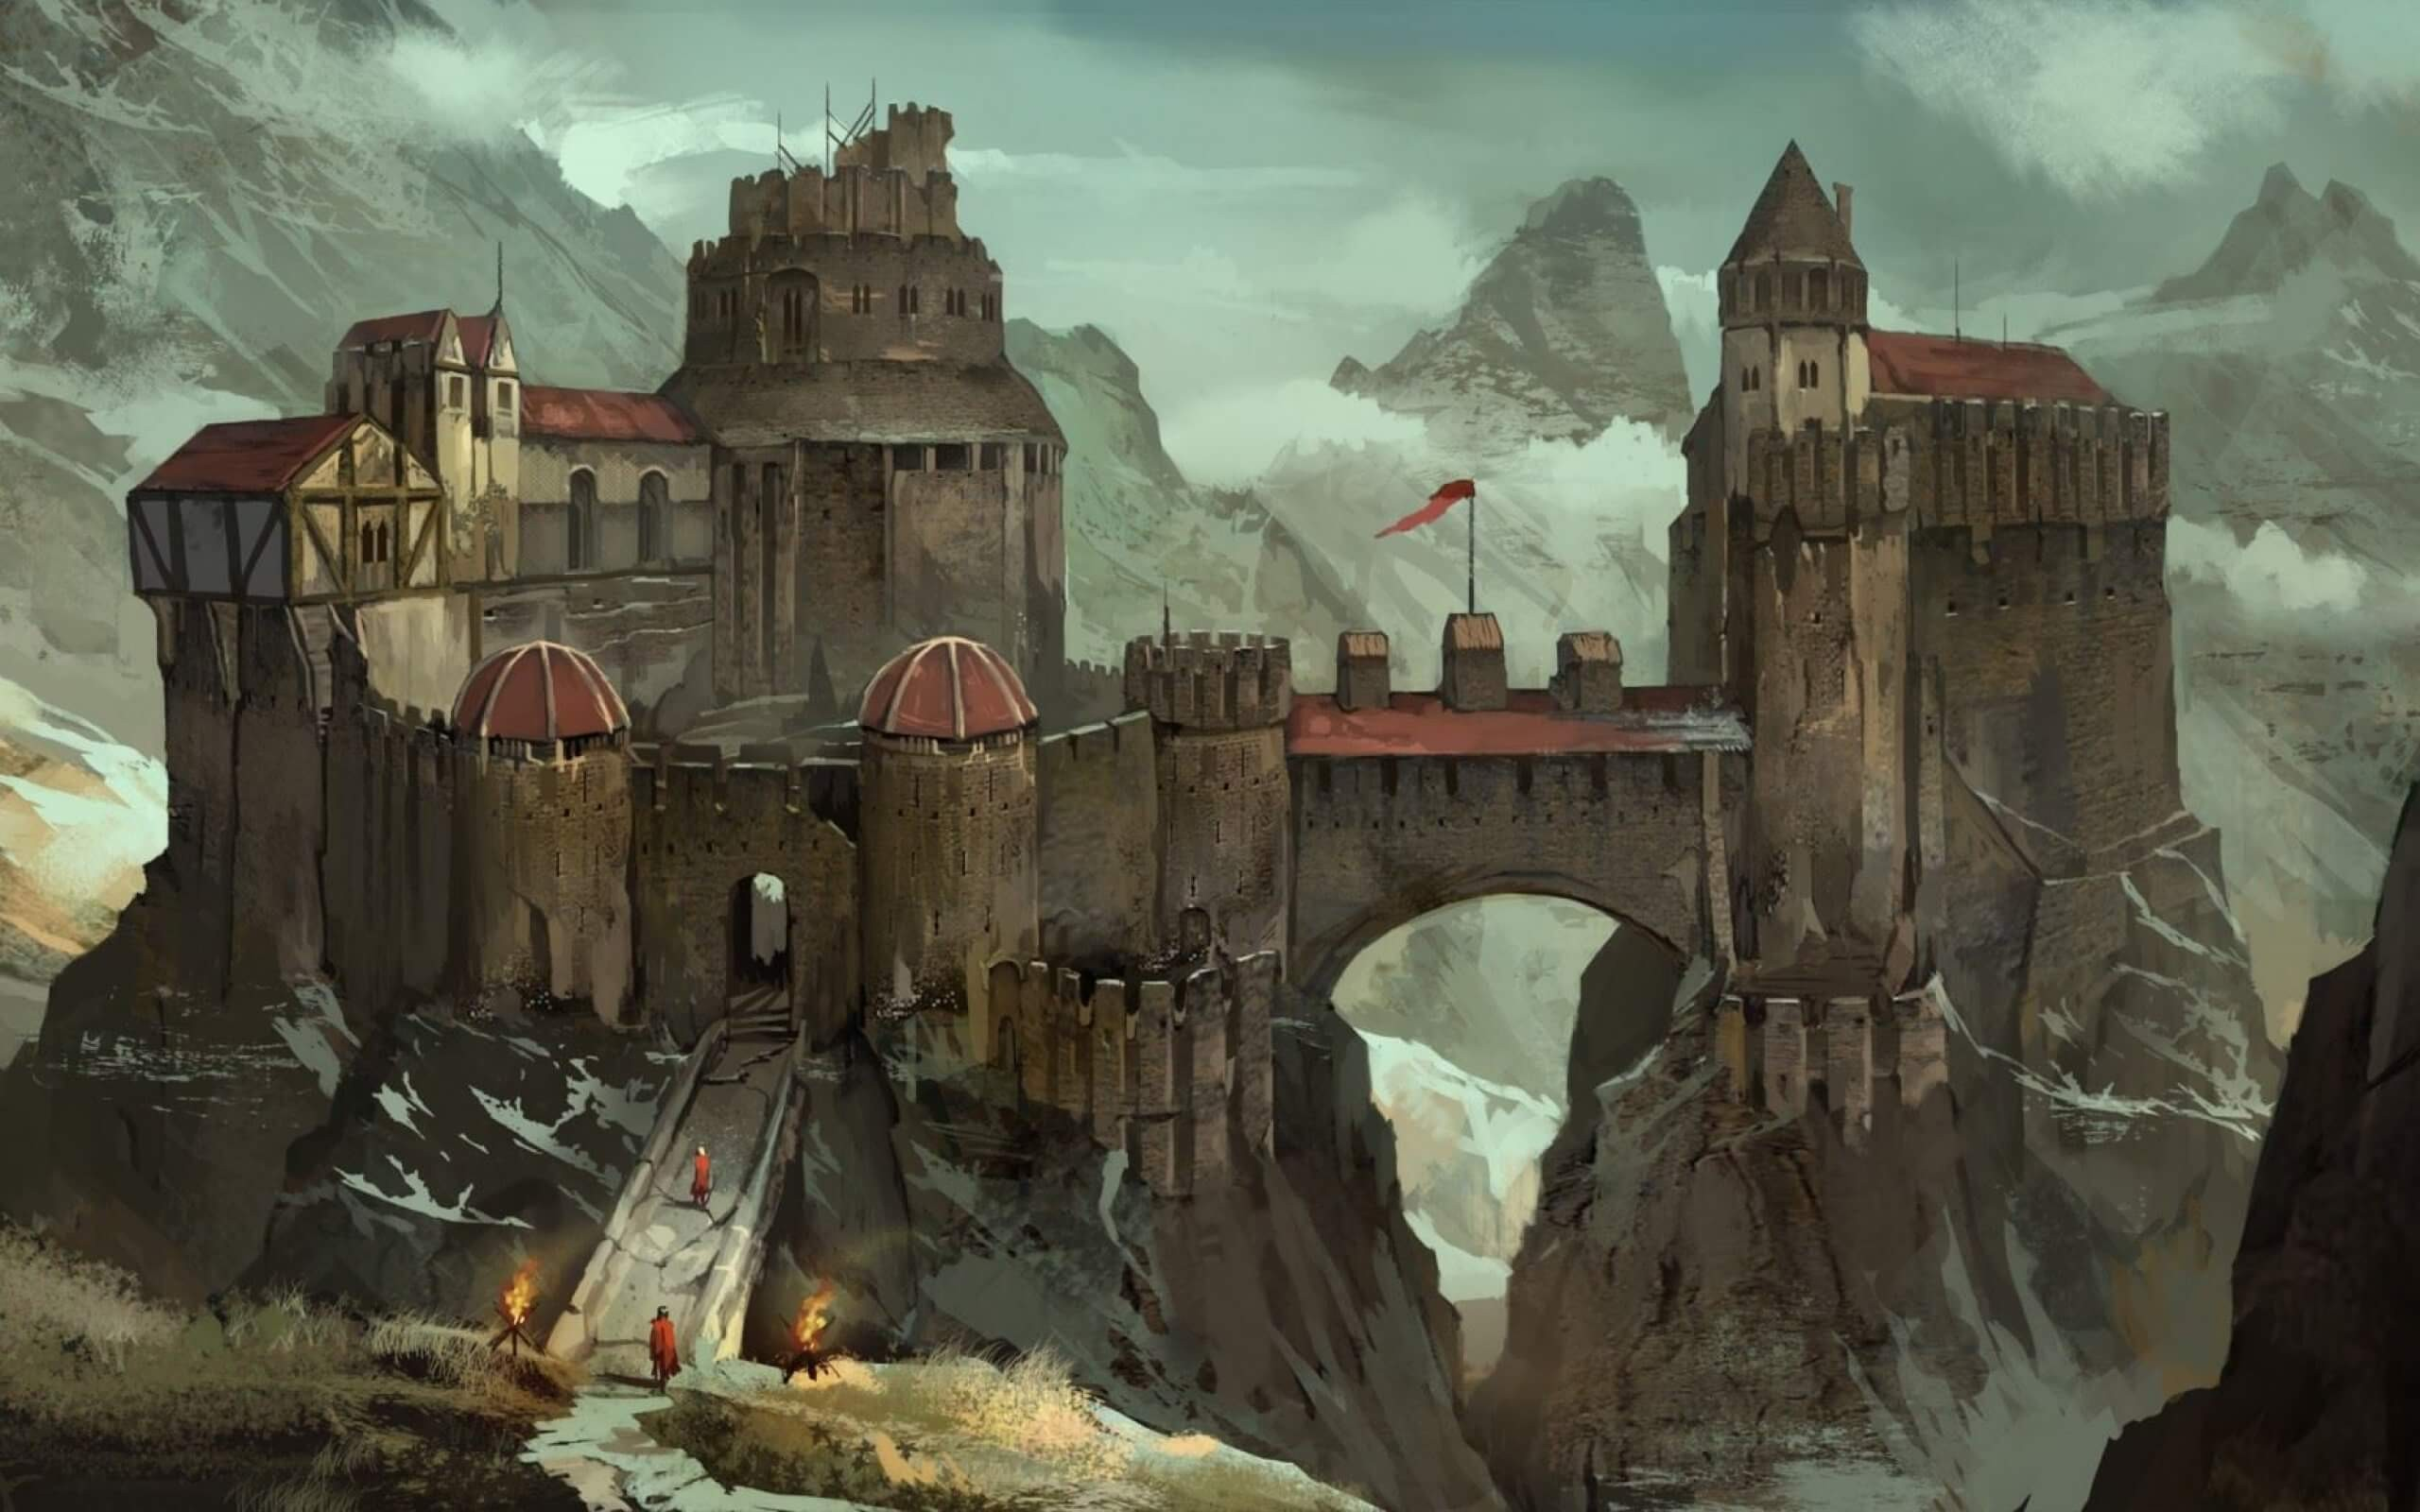 An Old Castle Artistic Work